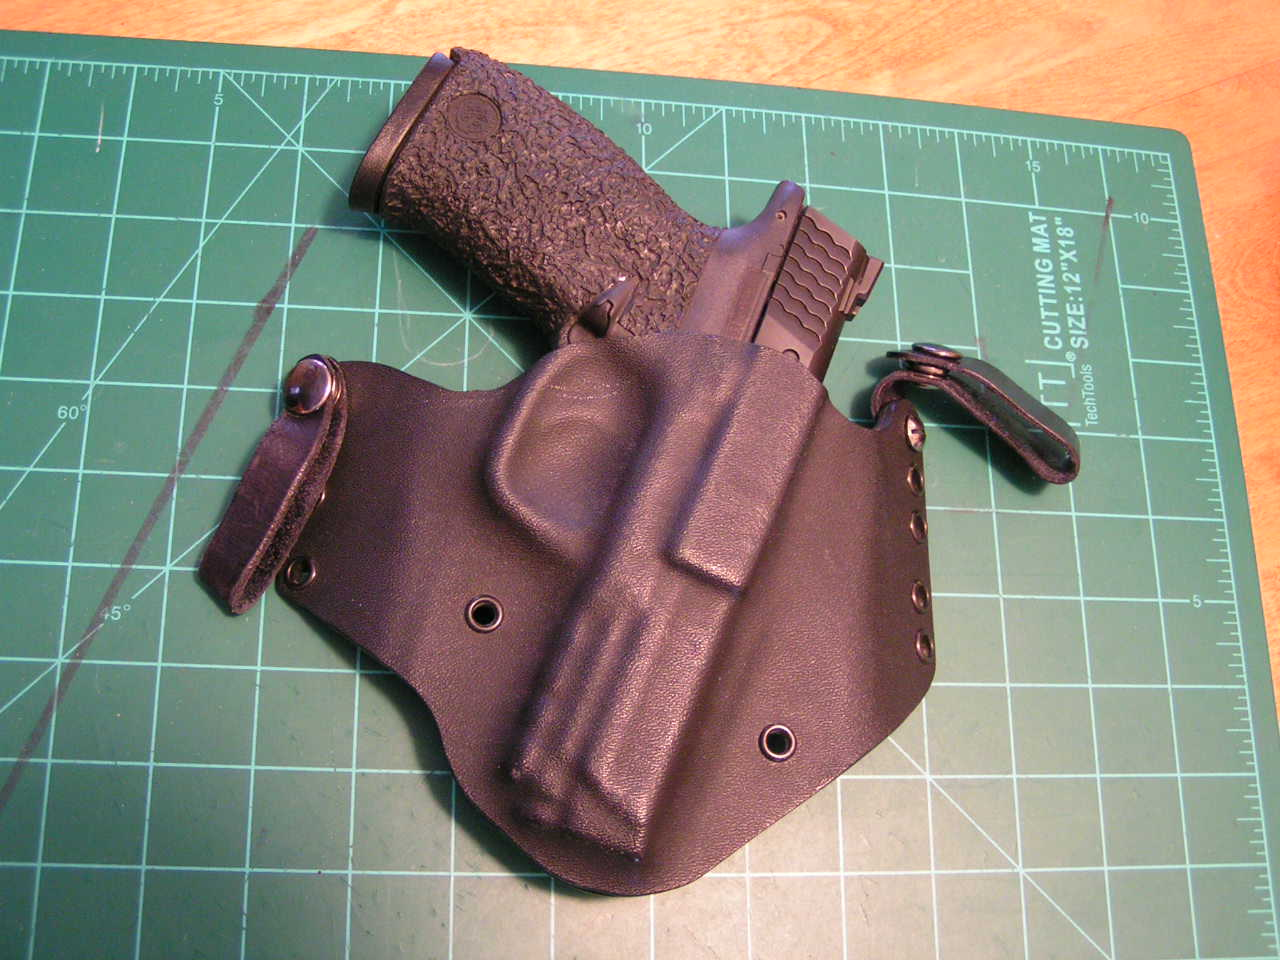 Ruger LCP9 9mm for Conceal Carry-pict0036.jpg